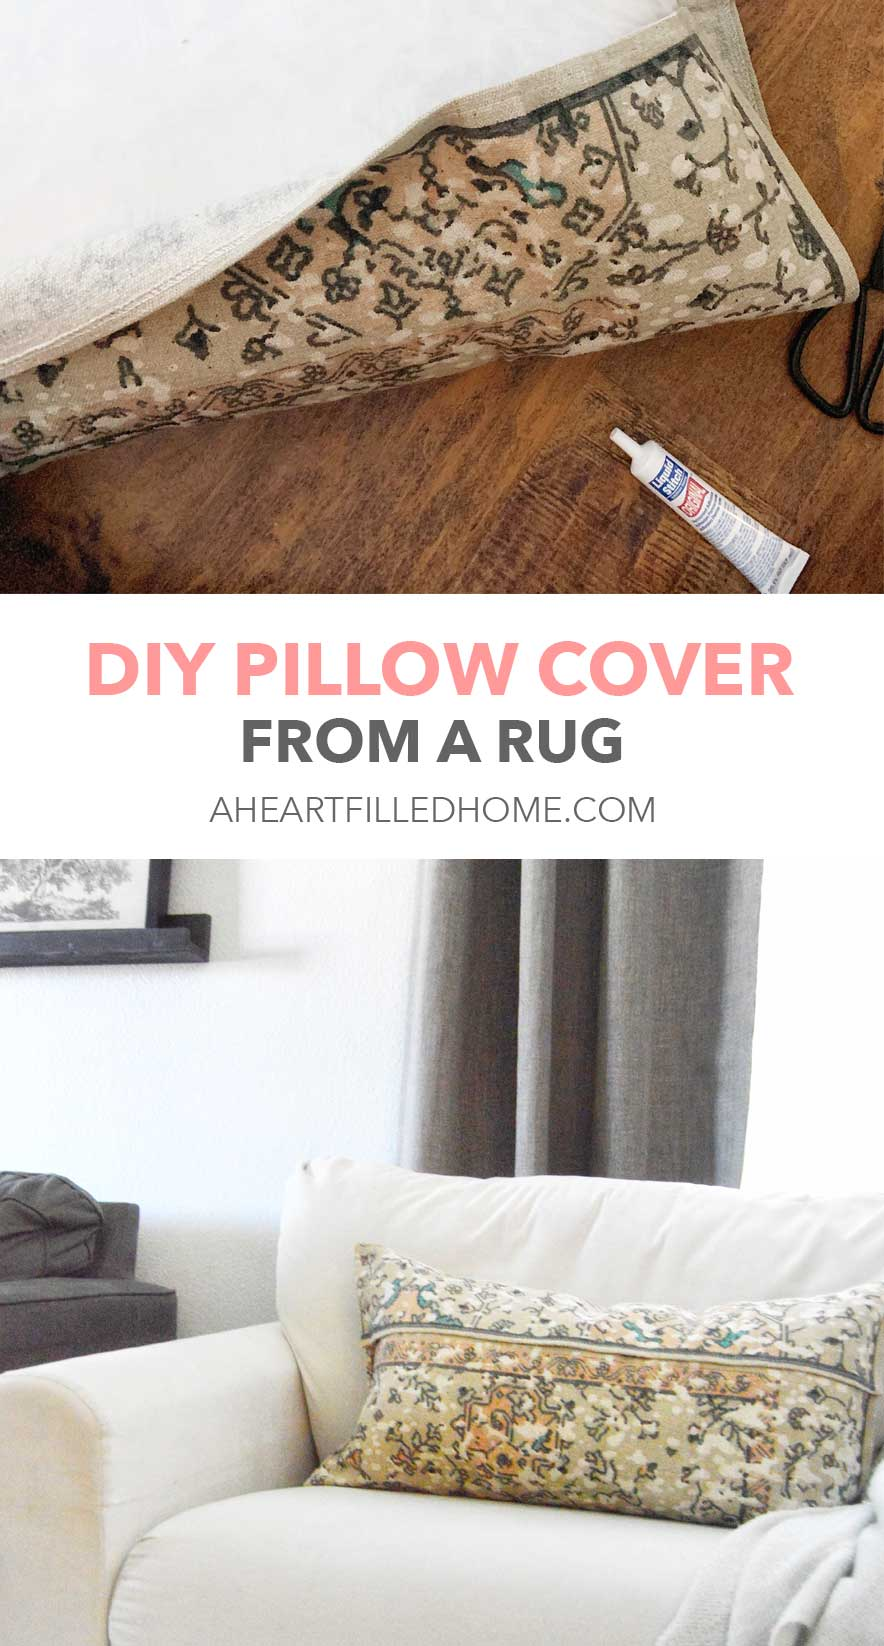 How to make pillow cover from a rug - from A Heart Filled Home